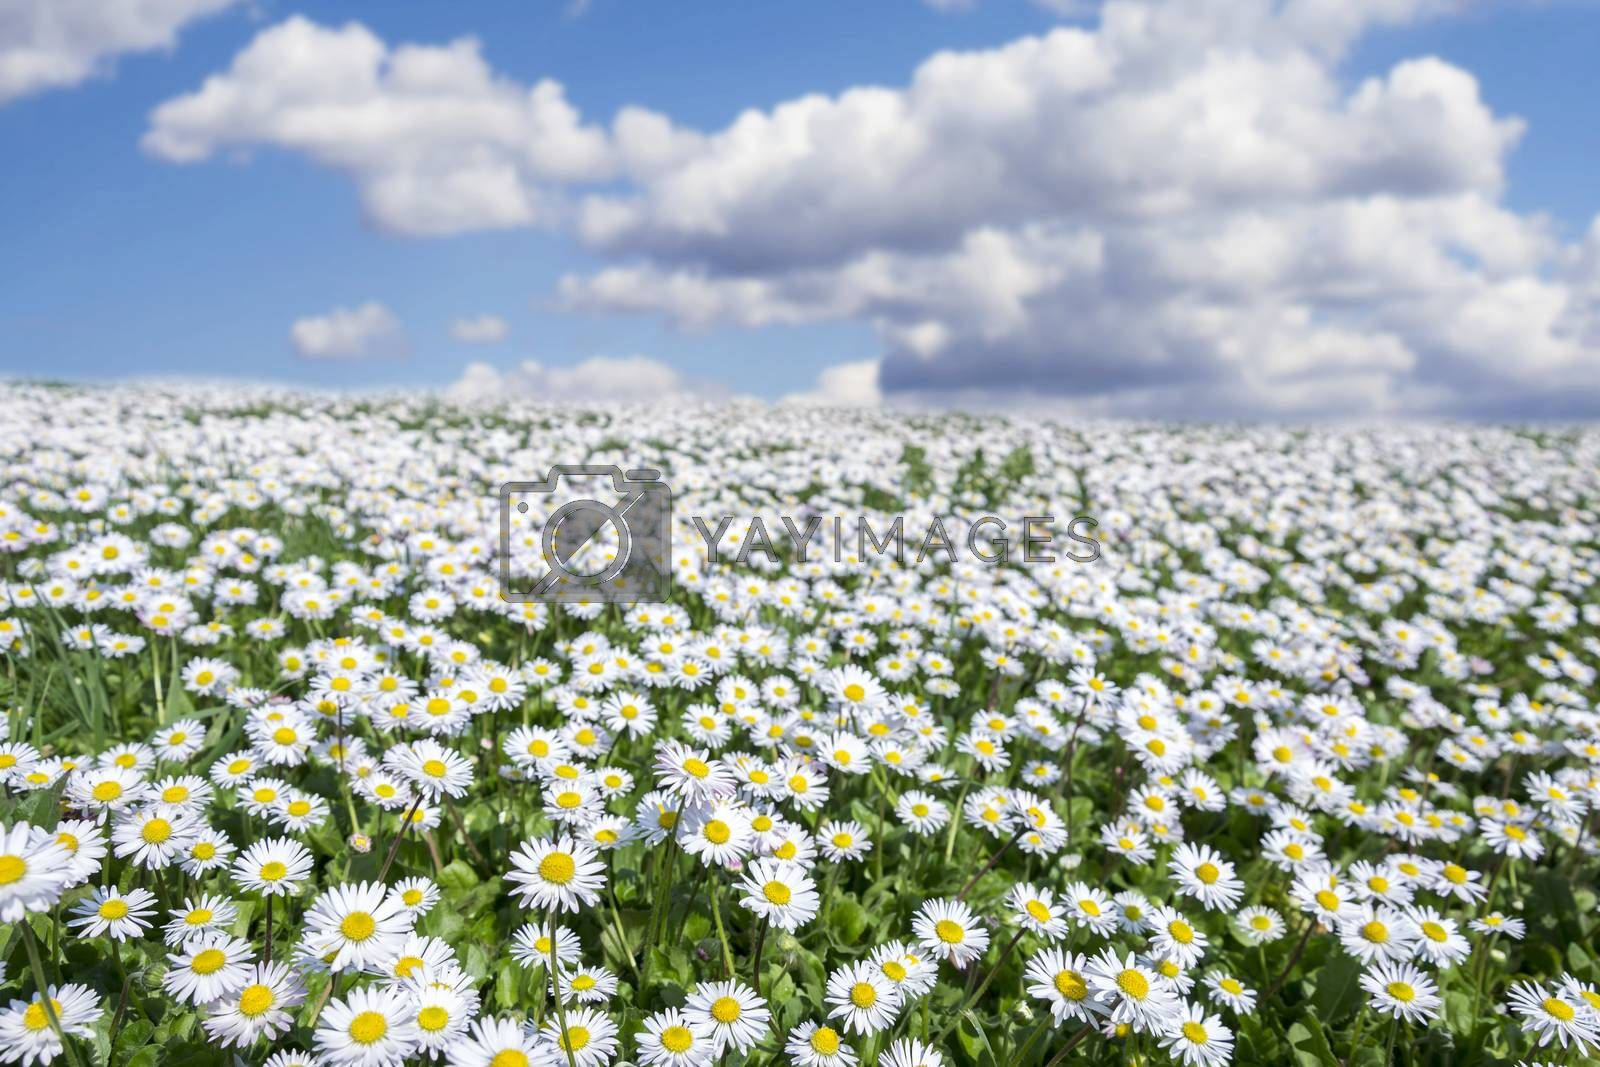 Royalty free image of field of daisies by enrico.lapponi